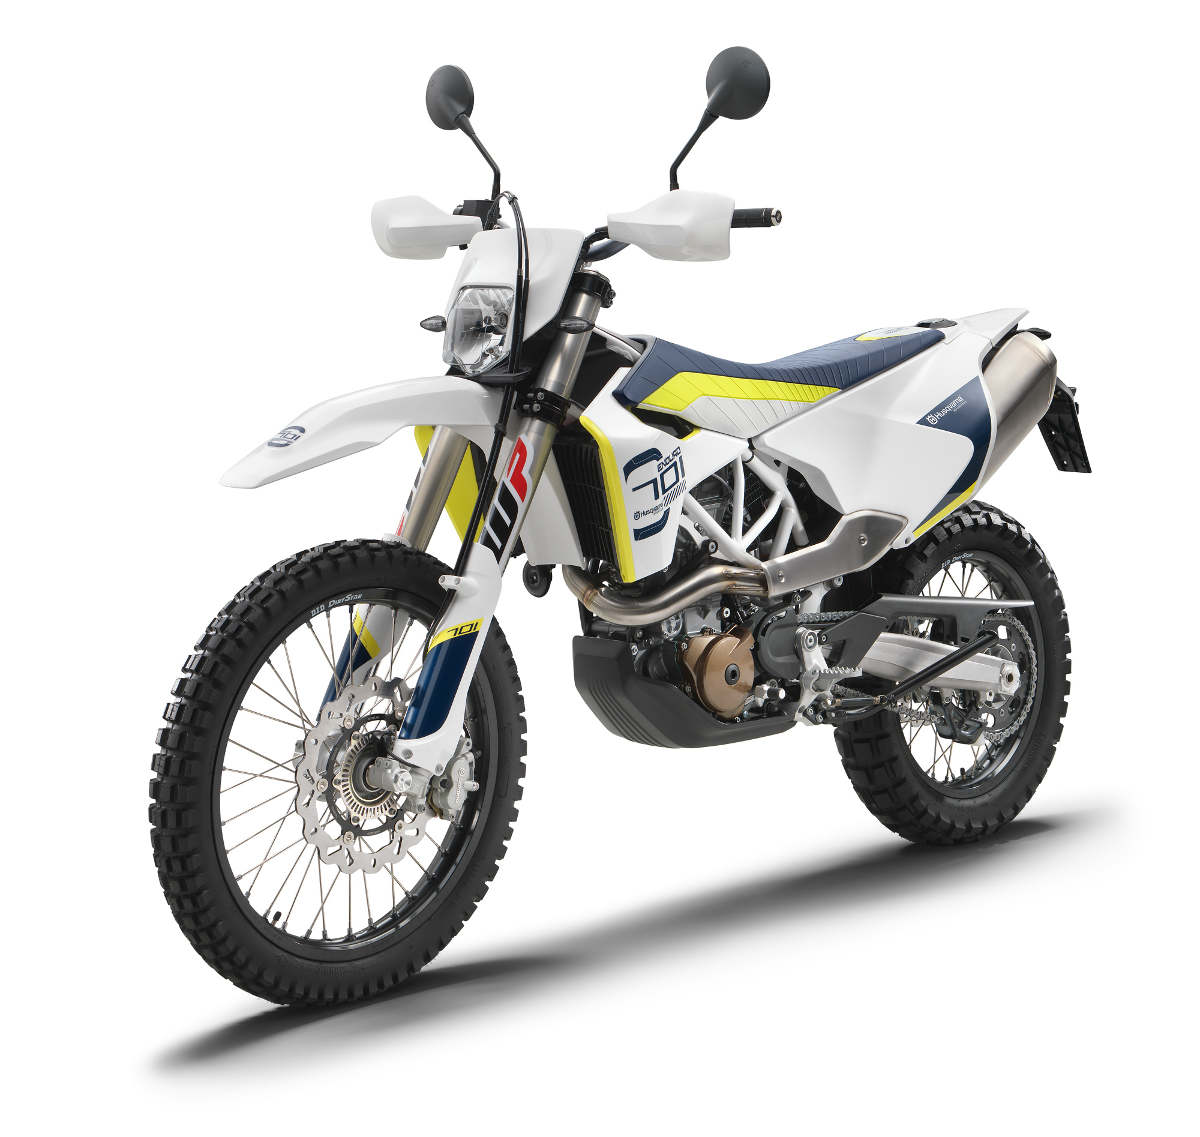 2017 Husqvarna 701 Supermoto And Enduro Get Smoother More Powerful Engine 171 Motorcycledaily Com